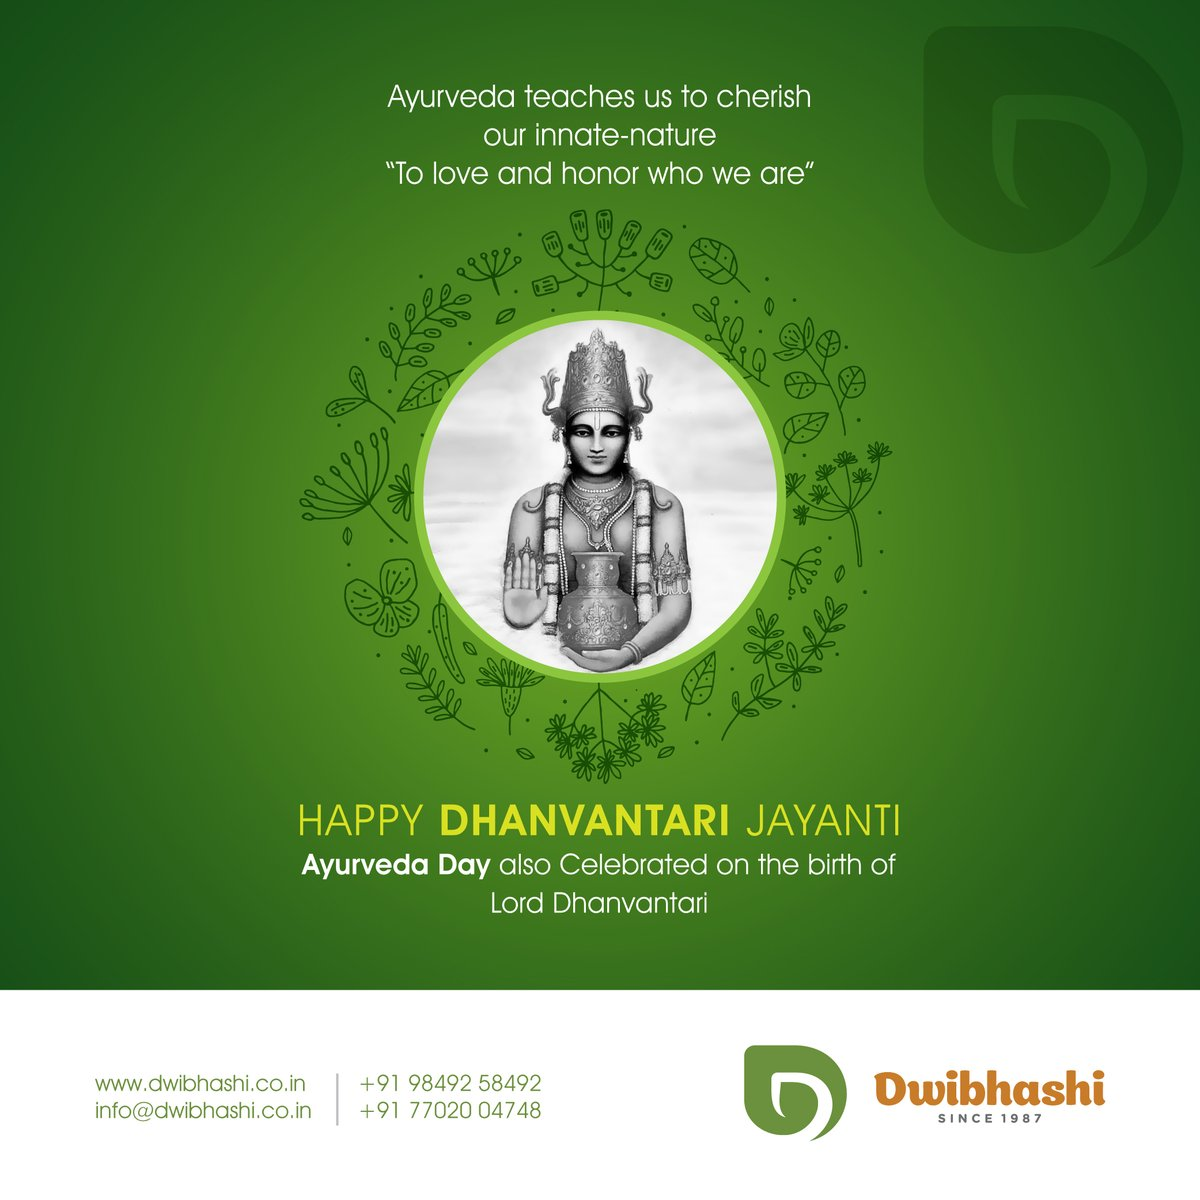 "Ayurveda teaches us to cherish our innate-nature. ""To love and honor who we are""  Happy Dhanvantari Jayanti  #Dhanvantarijayanti #Dhanvantari #Ayurveda #Ayurvedaday #Dwibhashi"